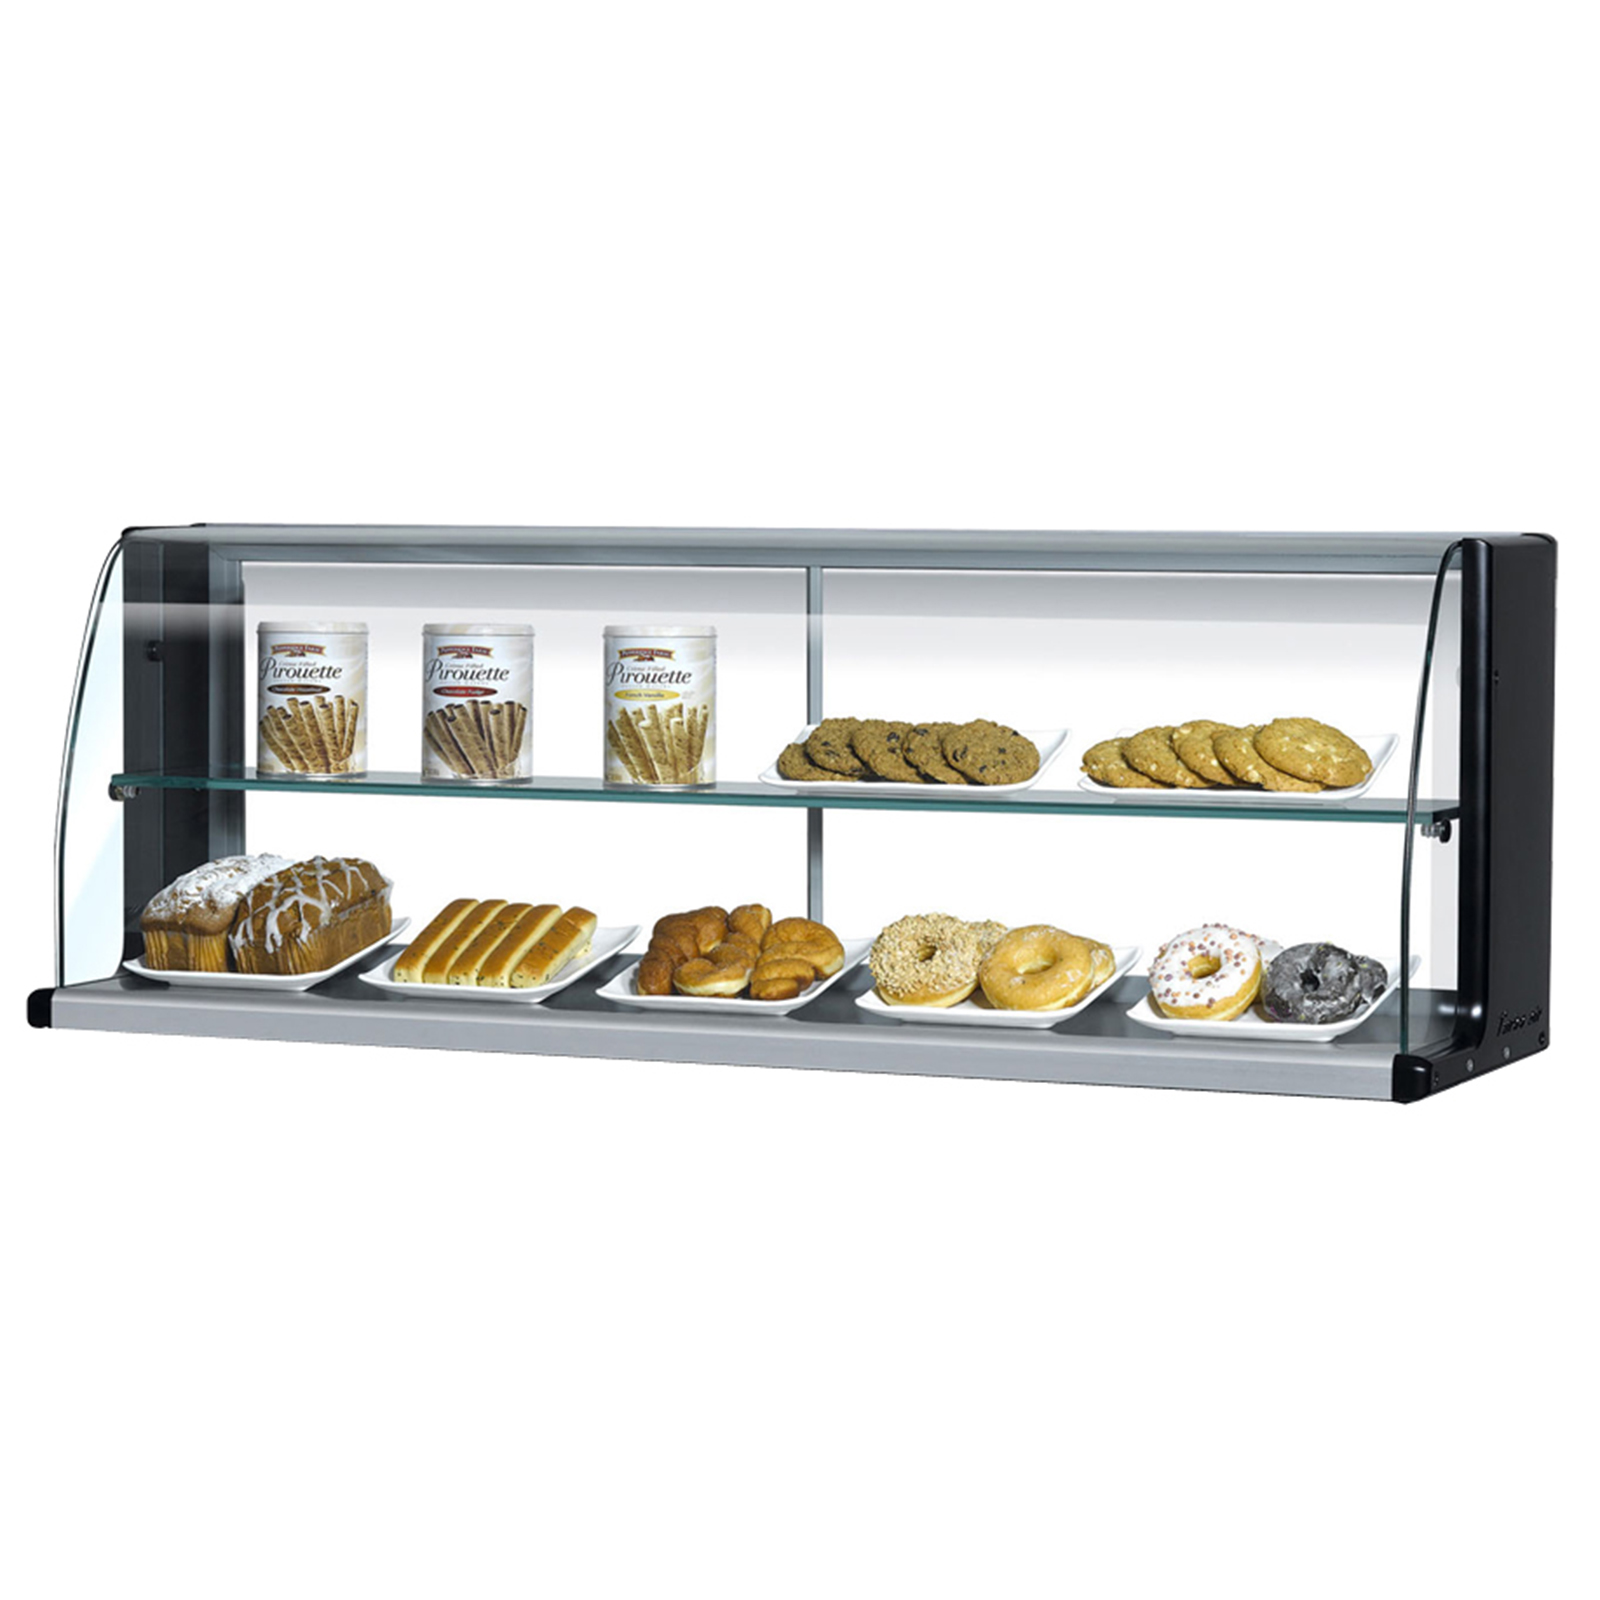 Turbo Air TOMD-75HB display case, non-refrigerated countertop